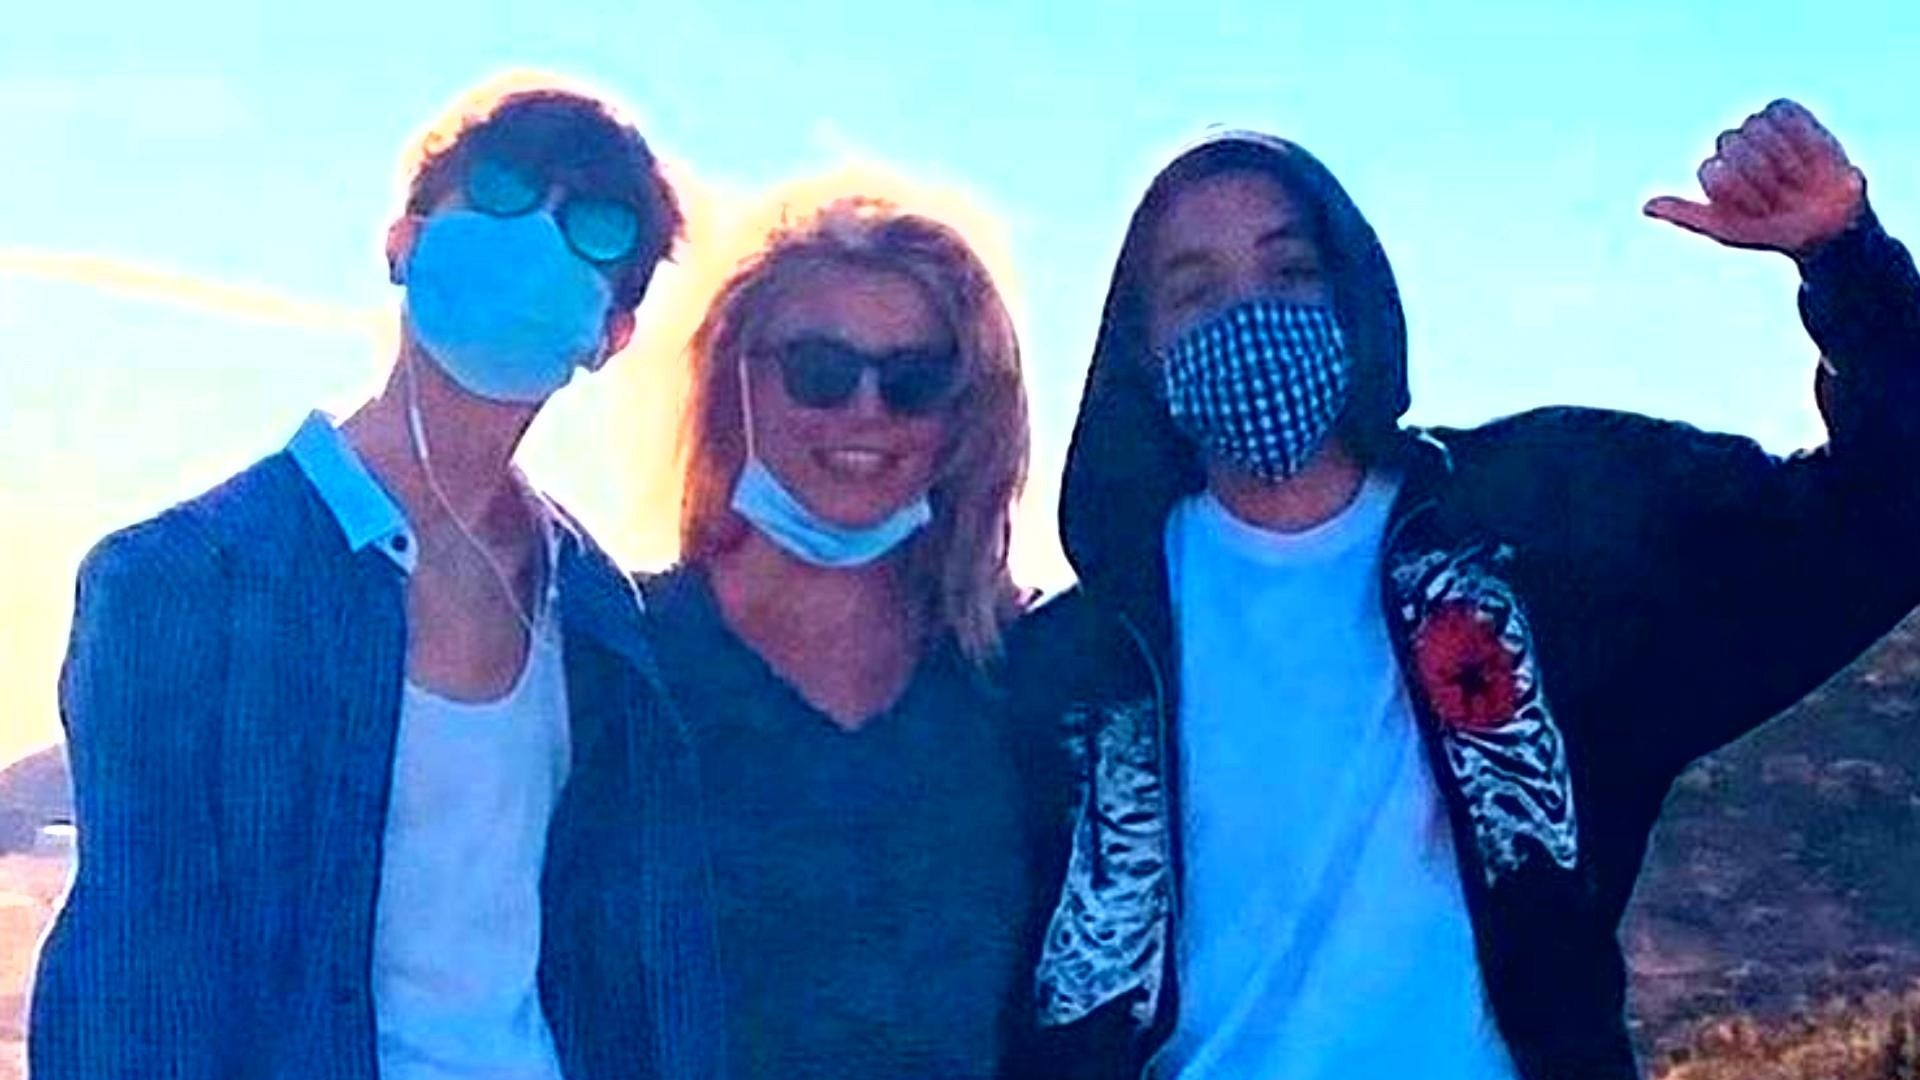 Britney Spears Insider Says The 'Highlight Of Her Week' Is Spending Quality Time With Her Teen Boys – Details!